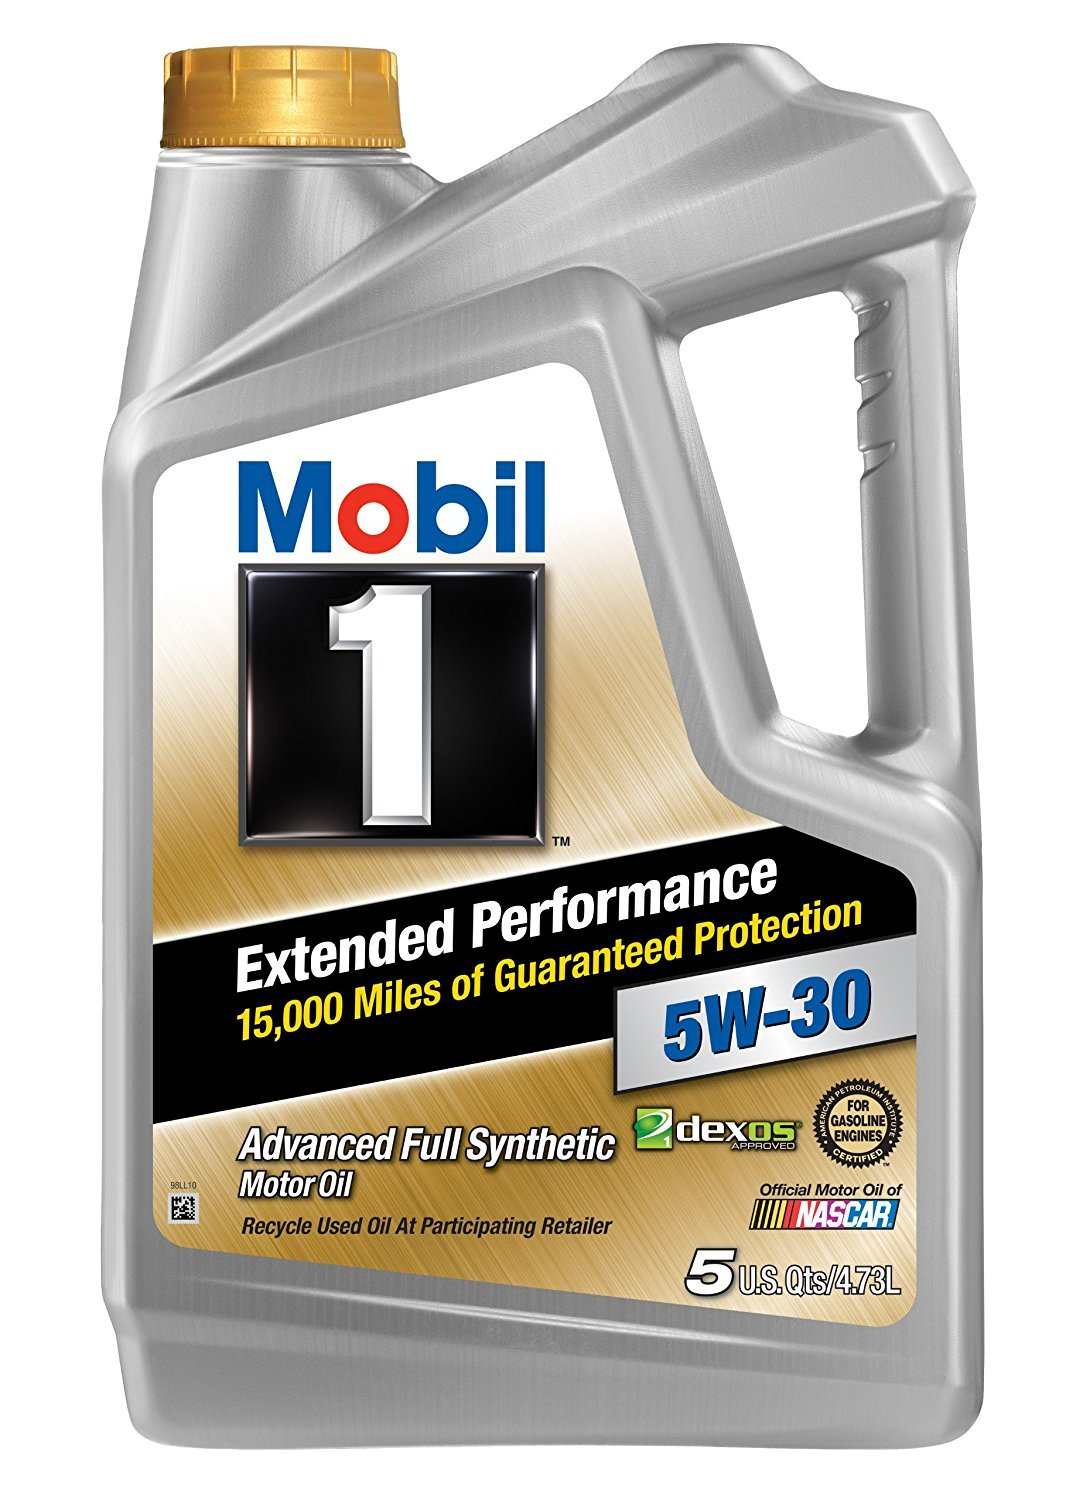 Mobil 1 (120766) Extended Performance 5W-30 Motor Oil - 5 Quart, 3 Pack… by Mobil 1